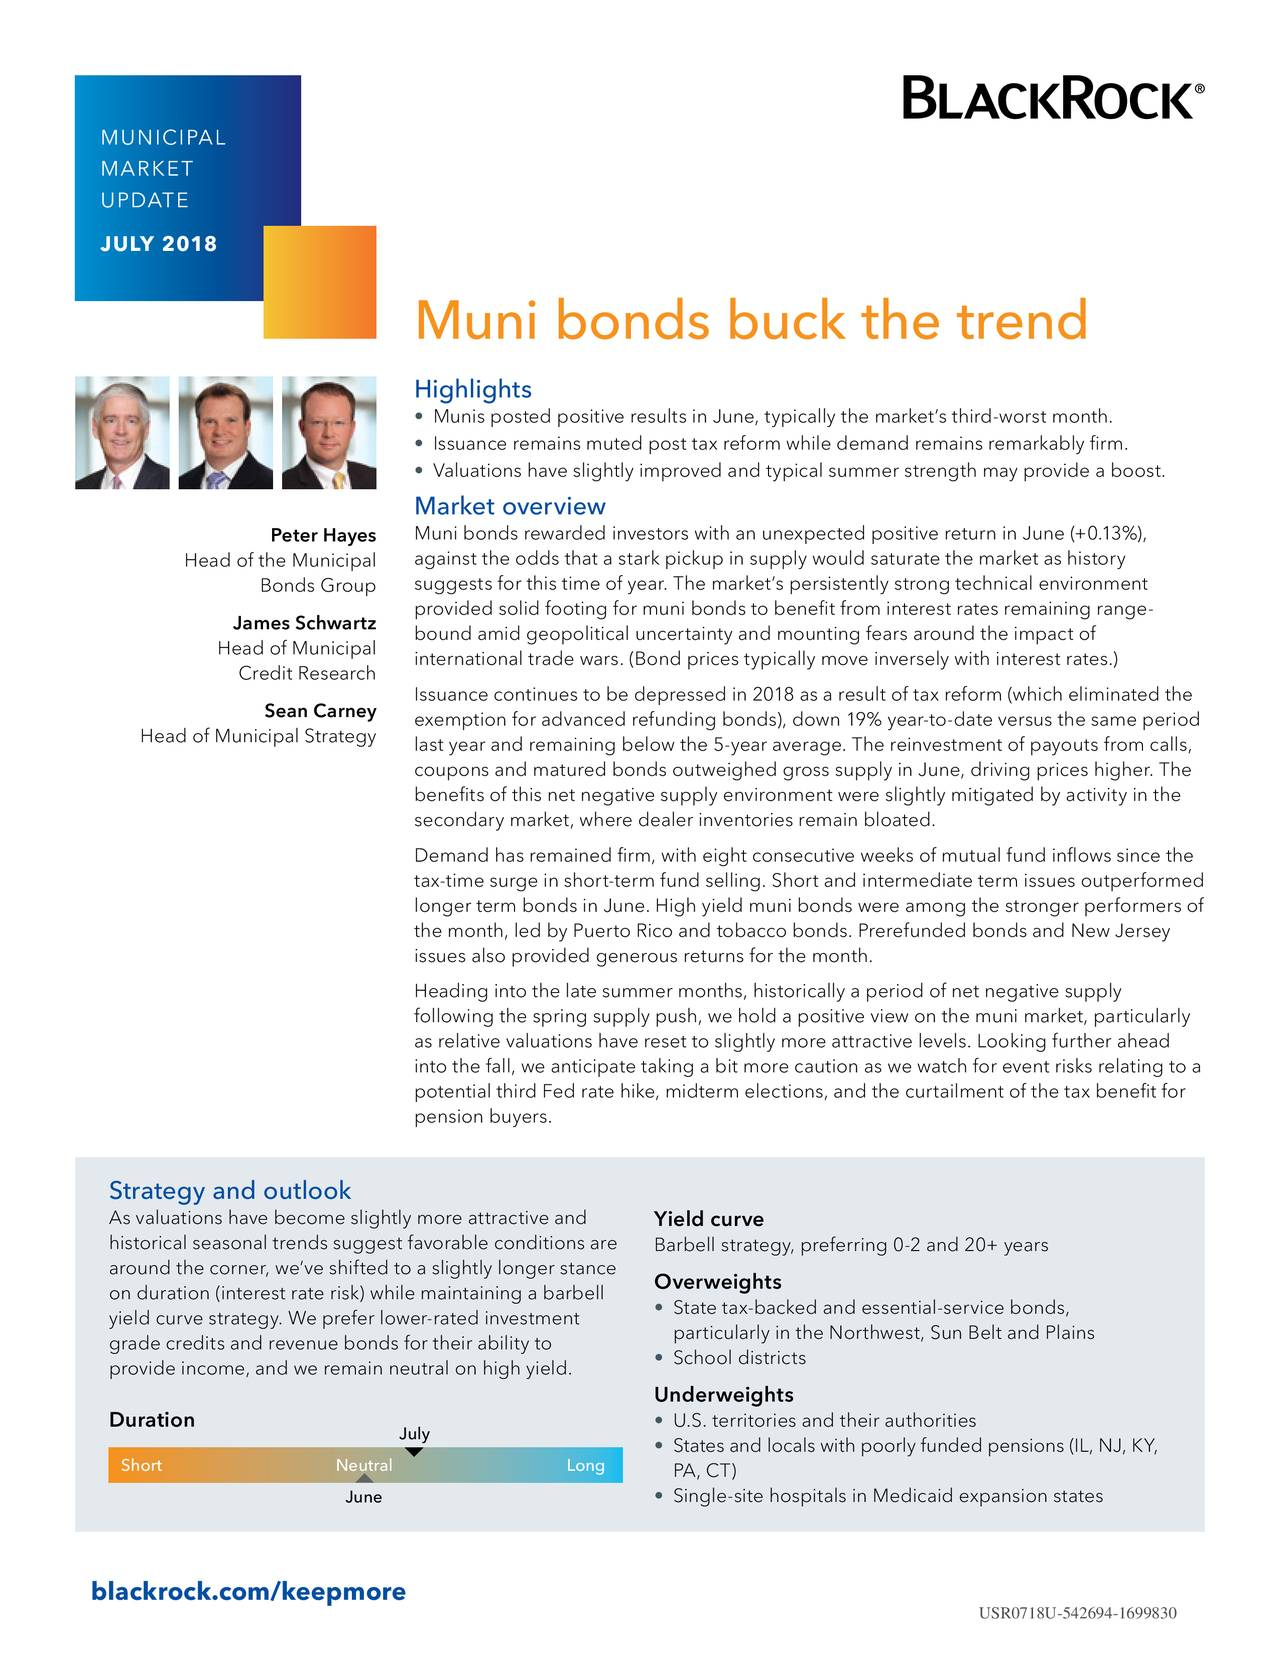 MARKET UPDATE JULY 2018 Muni bonds buck the trend Highlights • Munis posted positive results in June, typically the market's third-worst month. • Issuance remains muted post tax reform while demand remains remarkably firm. • Valuations have slightly improved and typical summer strength may provide a boost. Market overview Peter Hayes Muni bonds rewarded investors with an unexpected positive return in June (+0.13%), Head of the Municipal against the odds that a stark pickup in supply would saturate the market as history Bonds Group suggests for this time of year. The market's persistently strong technical environment provided solid footing for muni bonds to benefit from interest rates remaining range- James Schwartz bound amid geopolitical uncertainty and mounting fears around the impact of Head of Municipal international trade wars. (Bond prices typically move inversely with interest rates.) Credit Research Issuance continues to be depressed in 2018 as a result of tax reform (which eliminated the Sean Carney exemption for advanced refunding bonds), down 19% year-to-date versus the same period Head of Municipal Strategy last year and remaining below the 5-year average. The reinvestment of payouts from calls, coupons and matured bonds outweighed gross supply in June, driving prices higher. The benefits of this net negative supply environment were slightly mitigated by activity in the secondary market, where dealer inventories remain bloated. Demand has remained firm, with eight consecutive weeks of mutual fund inflows since the tax-time surge in short-term fund selling. Short and intermediate term issues outperformed longer term bonds in June. High yield muni bonds were among the stronger performers of the month, led by Puerto Rico and tobacco bonds. Prerefunded bonds and New Jersey issues also provided generous returns for the month. Heading into the late summer months, historically a period of net negative supply following the spring supply push, we hold a positive 